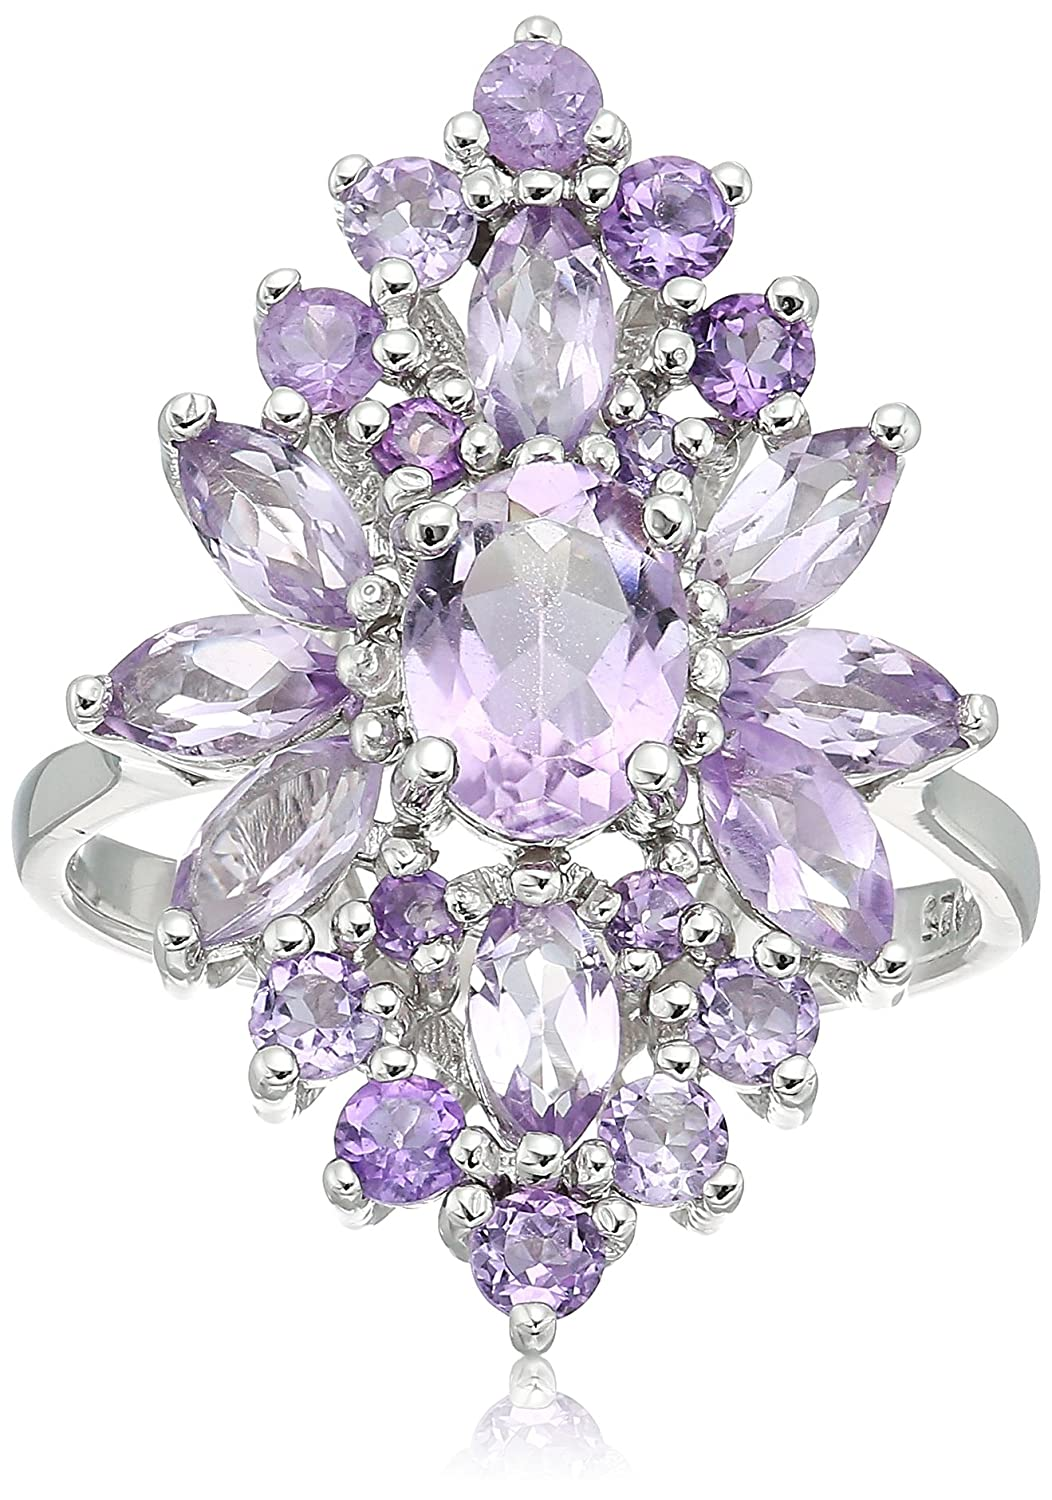 Amethyst Cluster Ring, Size 9 RS2162AM-9